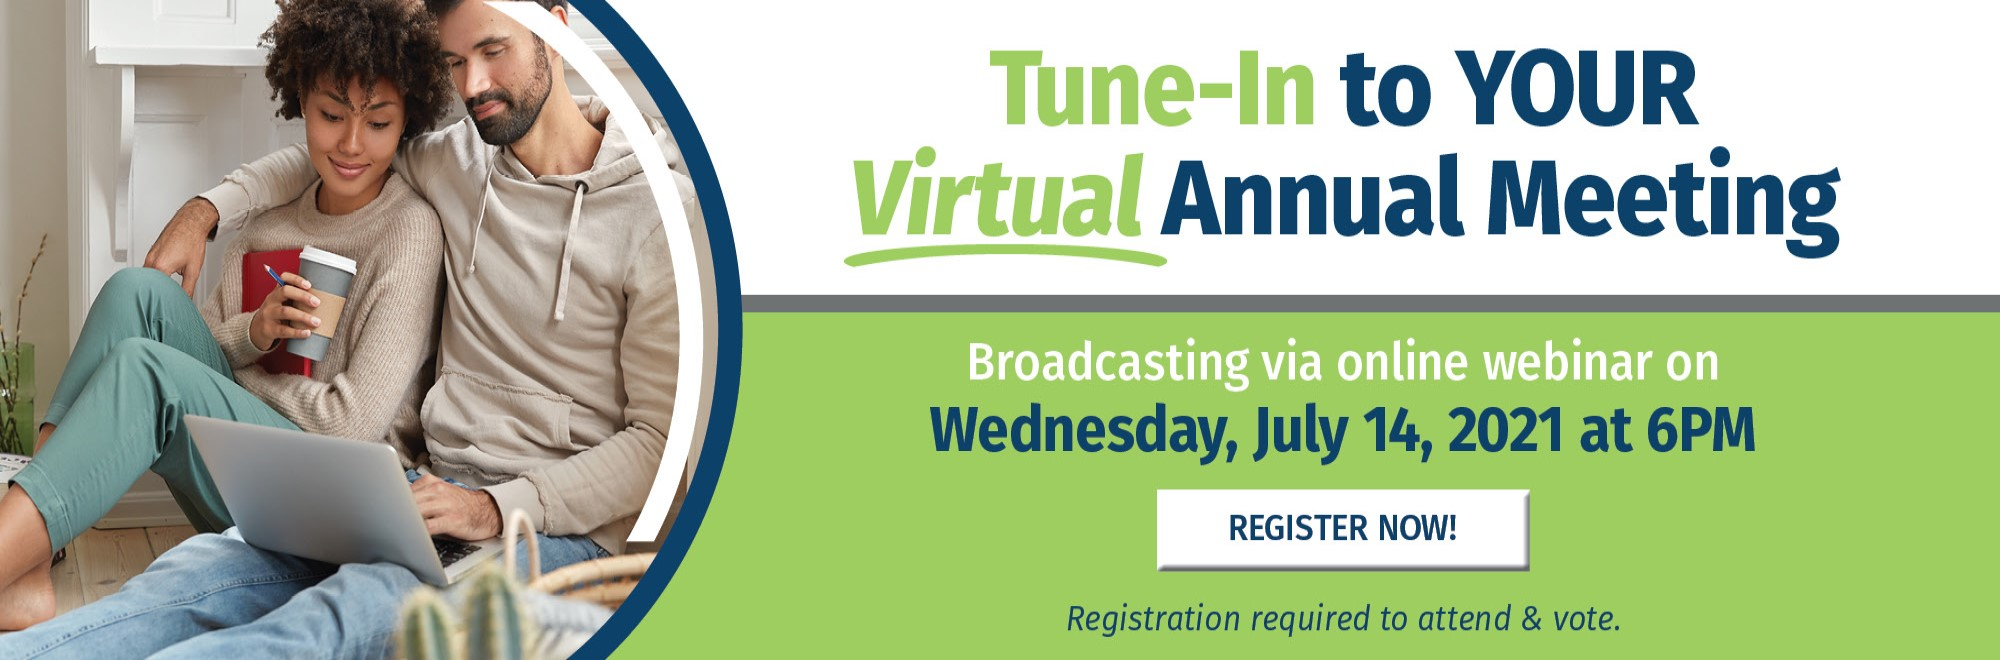 Tune-in to your virtual annual meeting, broadcasting via online webinar on Wed., July 14 at 6pm. Register now - required to attend and vote.